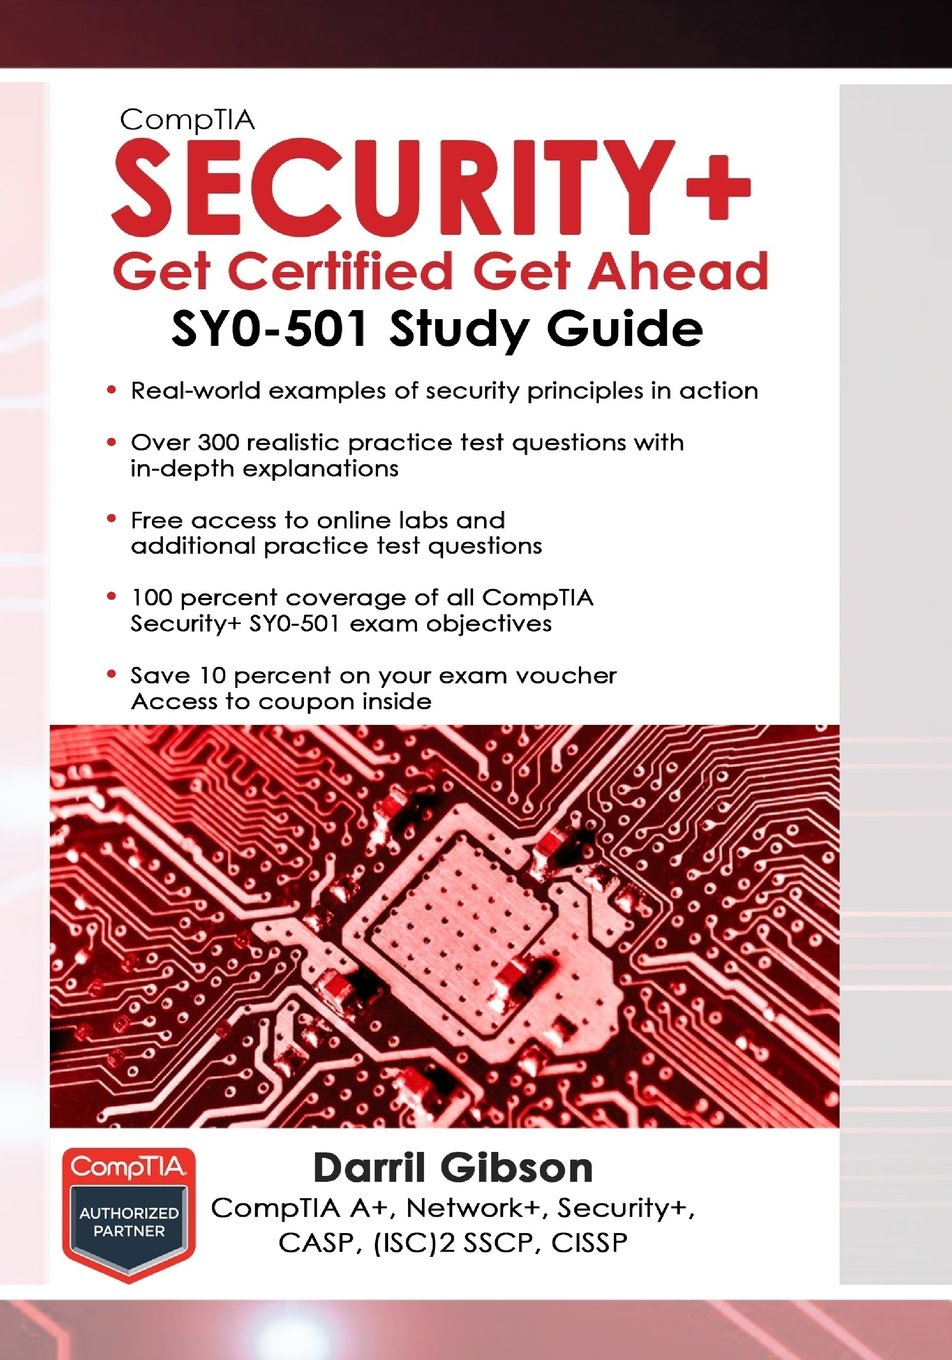 CompTIA Security+ Get Certified Get Ahead: SY0-501 Study Guide (Inglese) Copertina flessibile Darril Gibson 1939136059